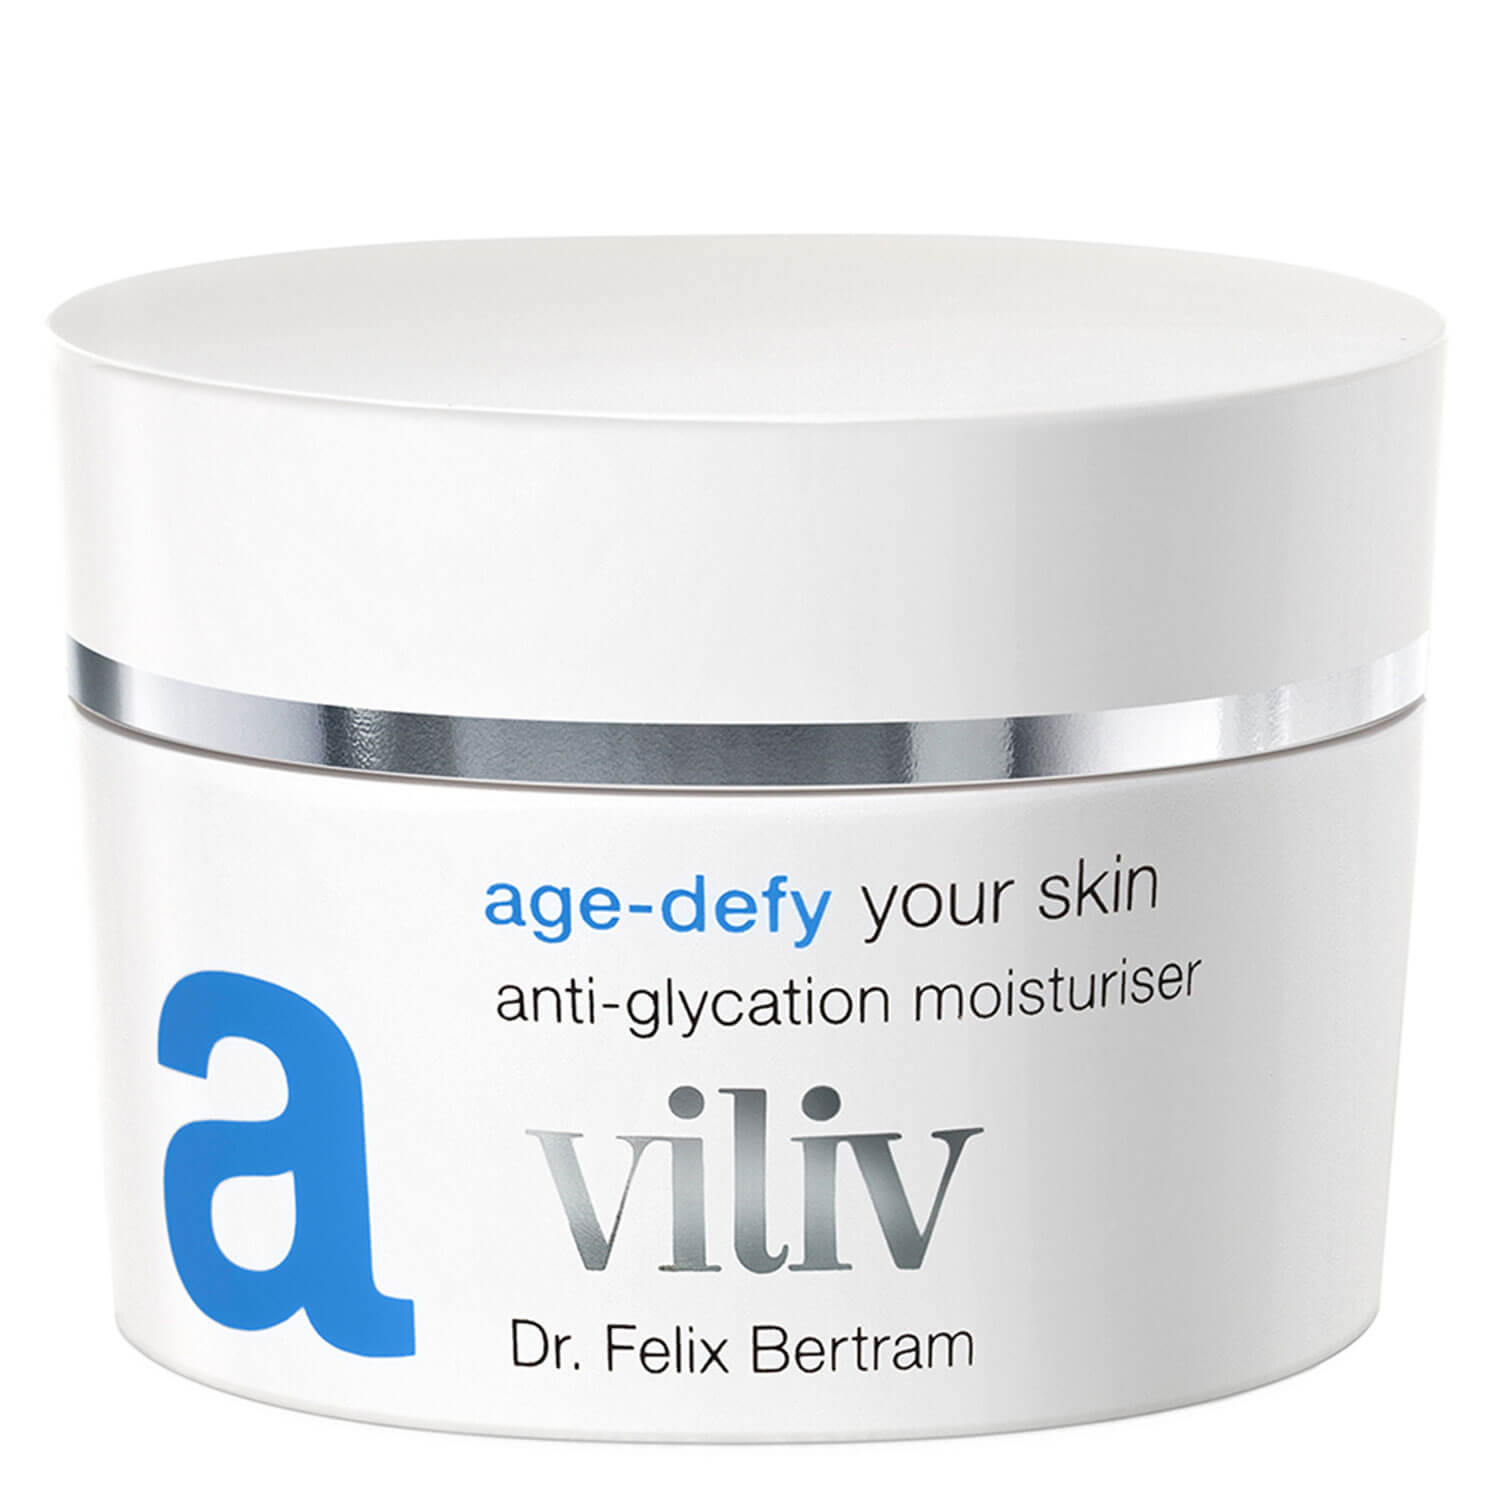 viliv - age-defy your skin anti-glycation moisturiser